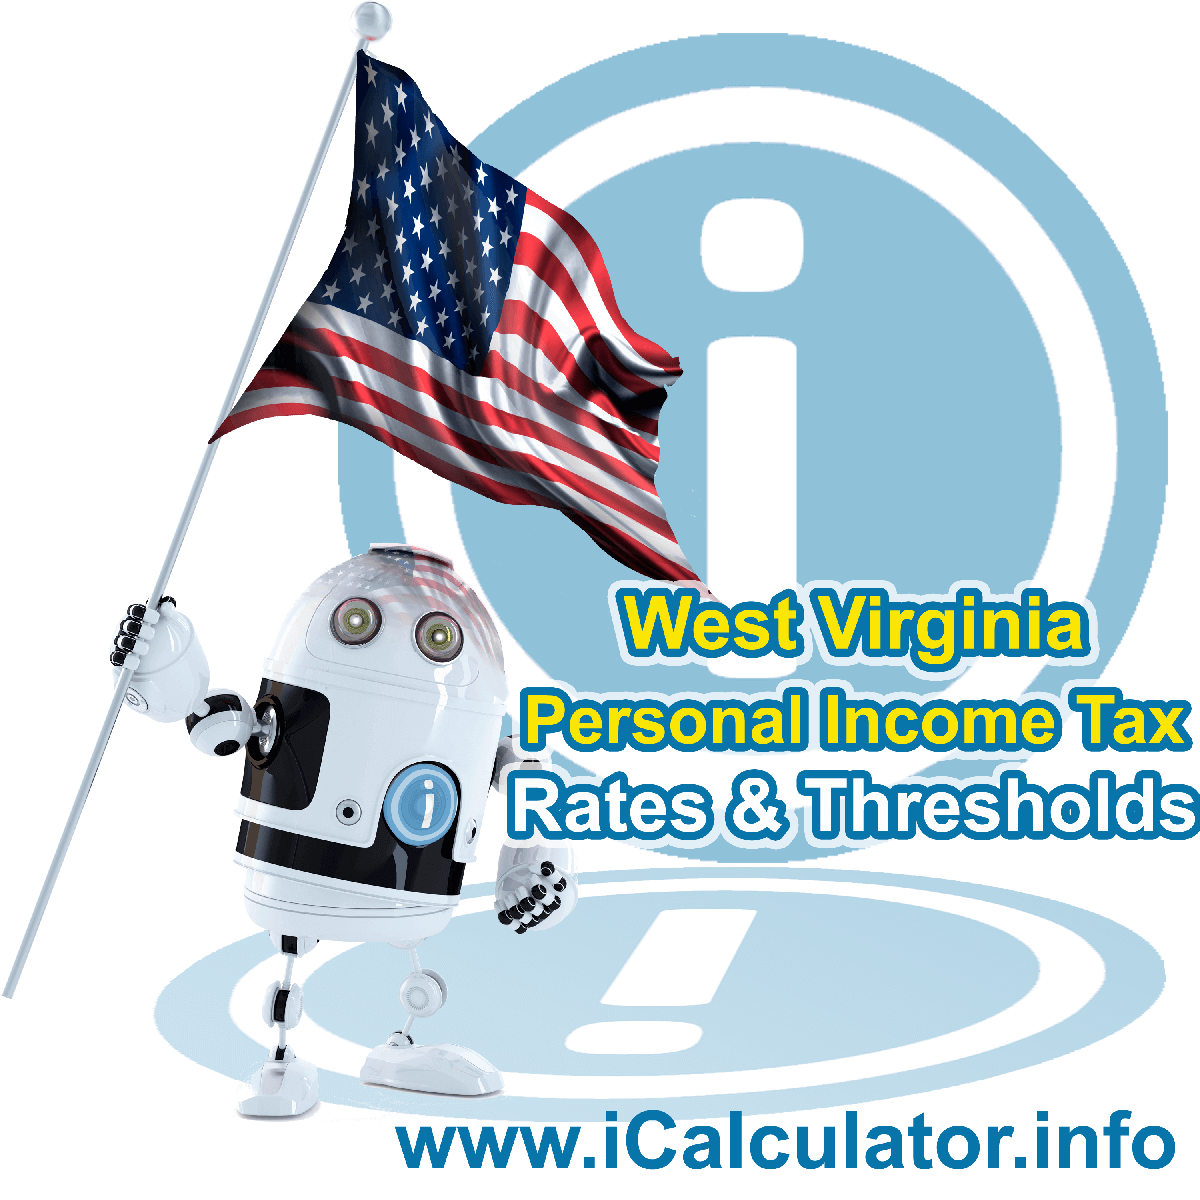 West Virginia State Tax Tables 2013. This image displays details of the West Virginia State Tax Tables for the 2013 tax return year which is provided in support of the 2013 US Tax Calculator